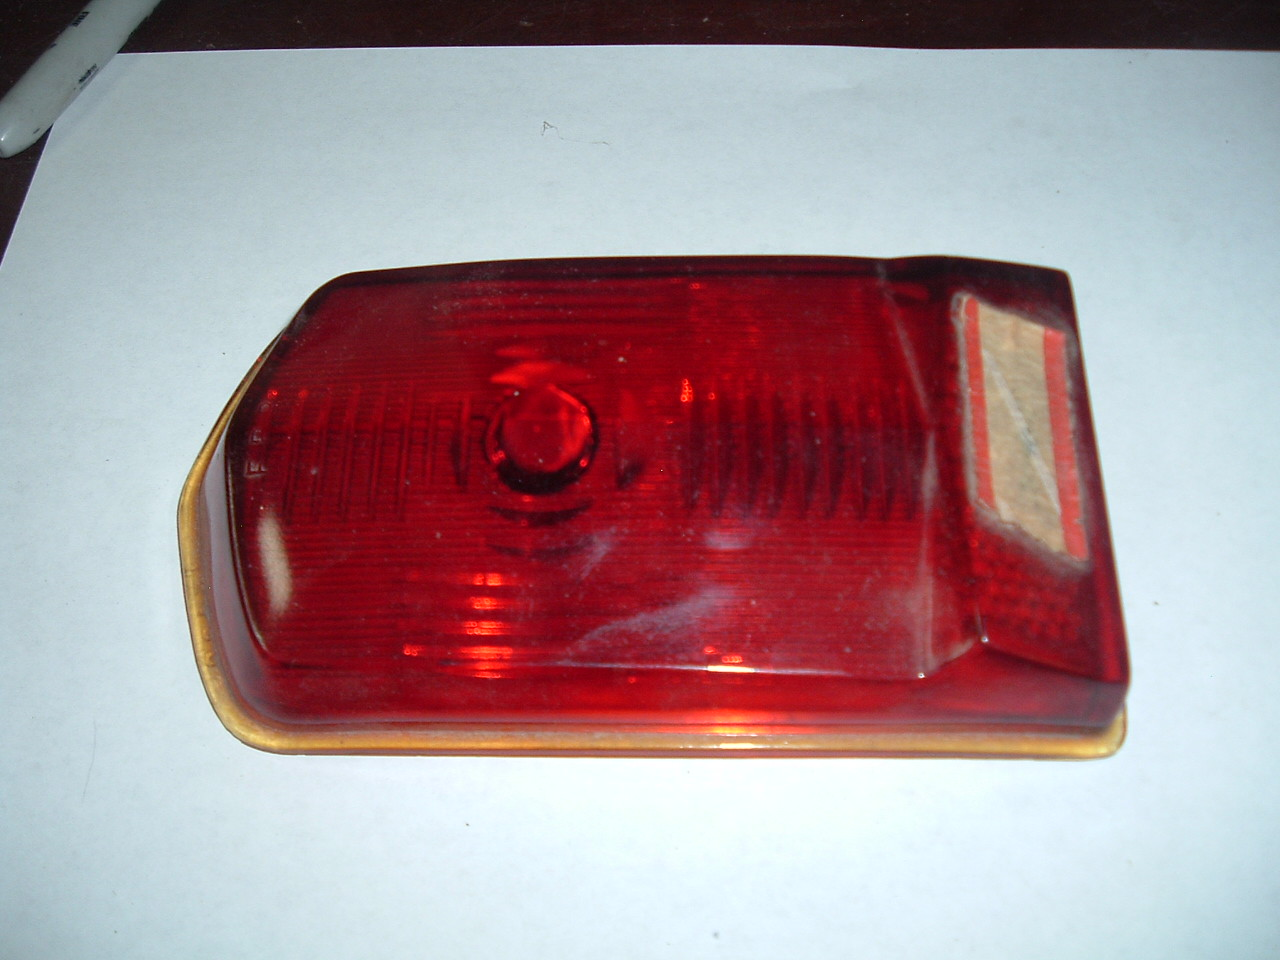 1949 1950 Fraizer Manhattan rear taillight lens new glass (z 4950Manhattan)